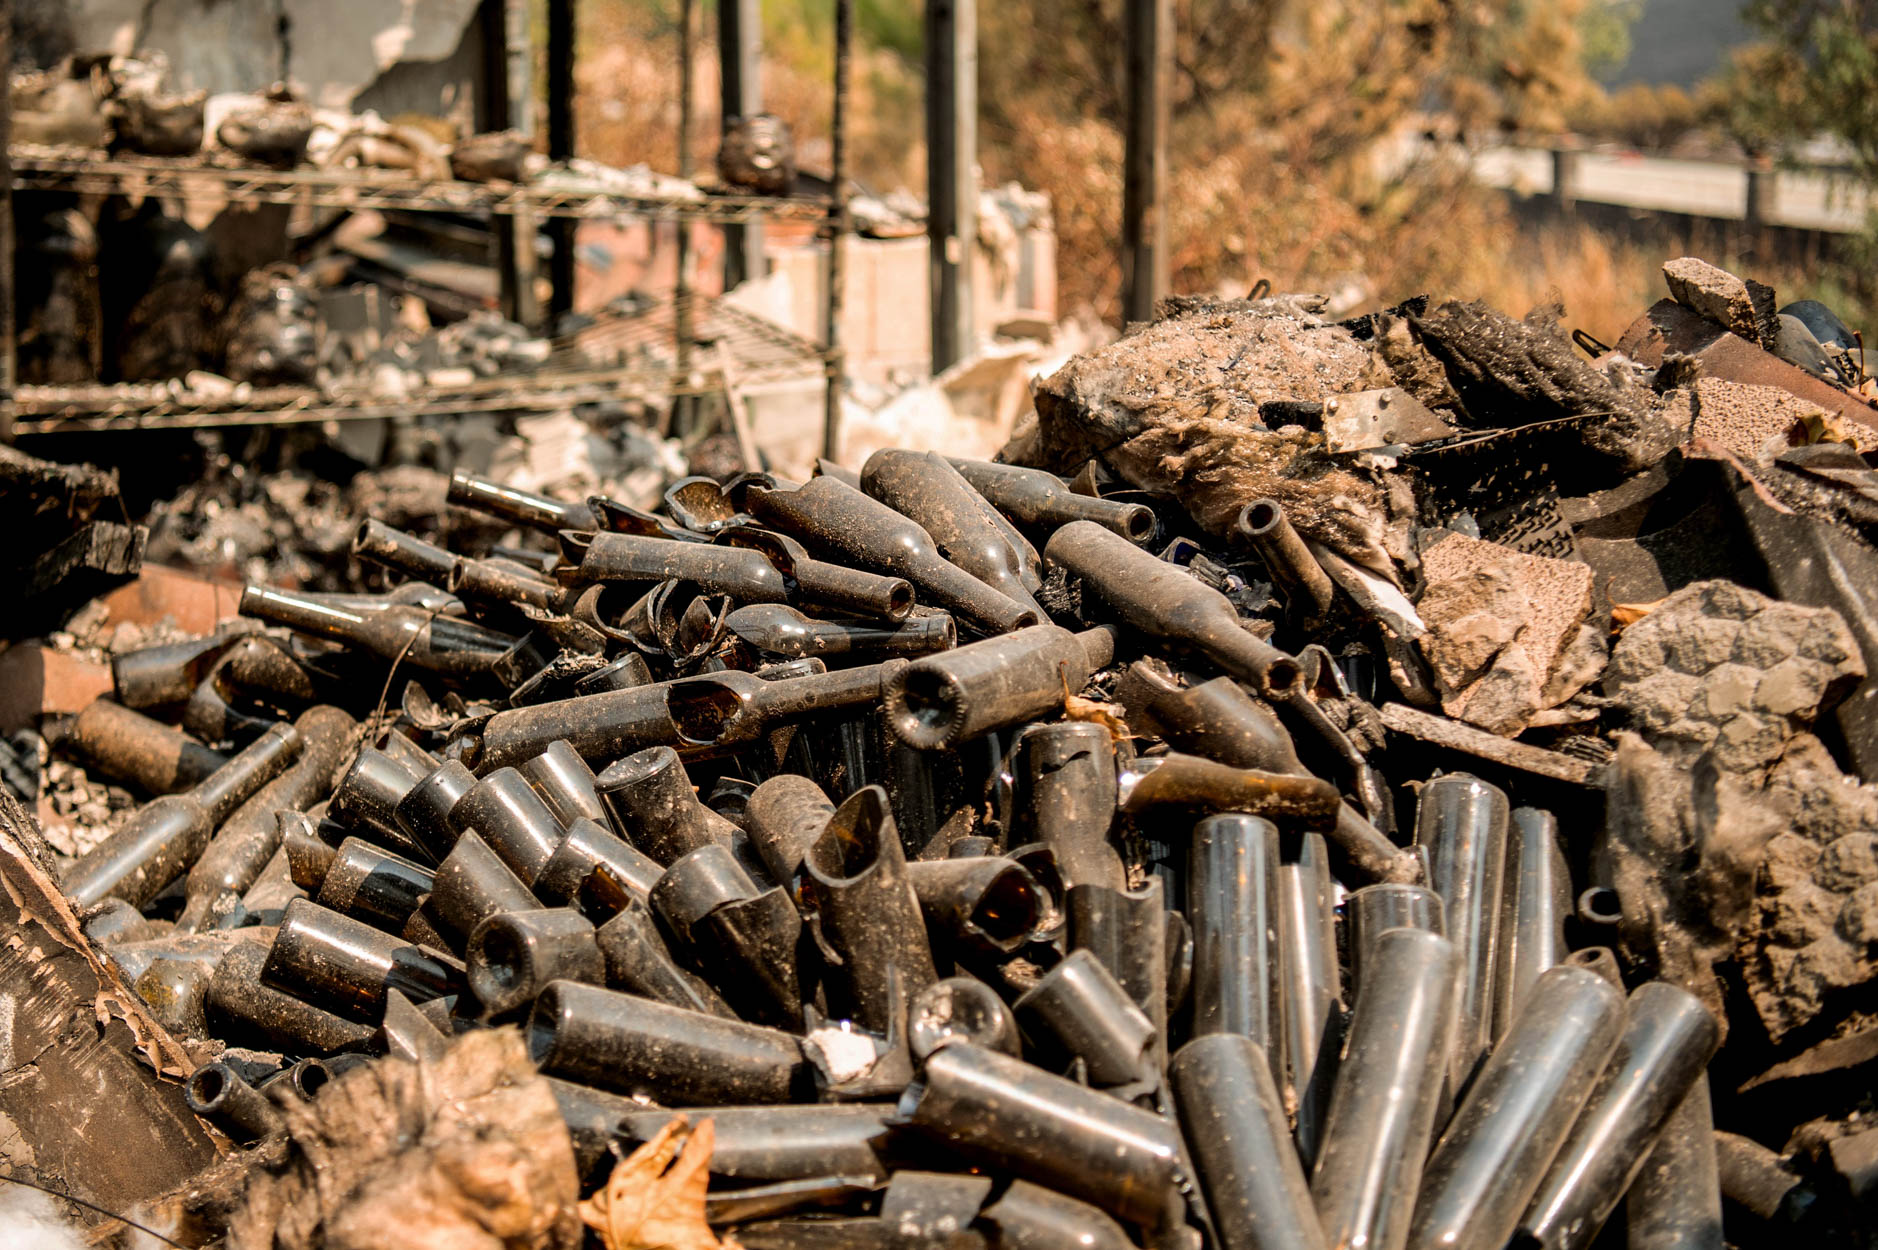 Burned wine bottles sit amidst charred remains at La Borgata Winery during the LNU Lightning Complex fire in Vacaville, California on August 23, 2020.